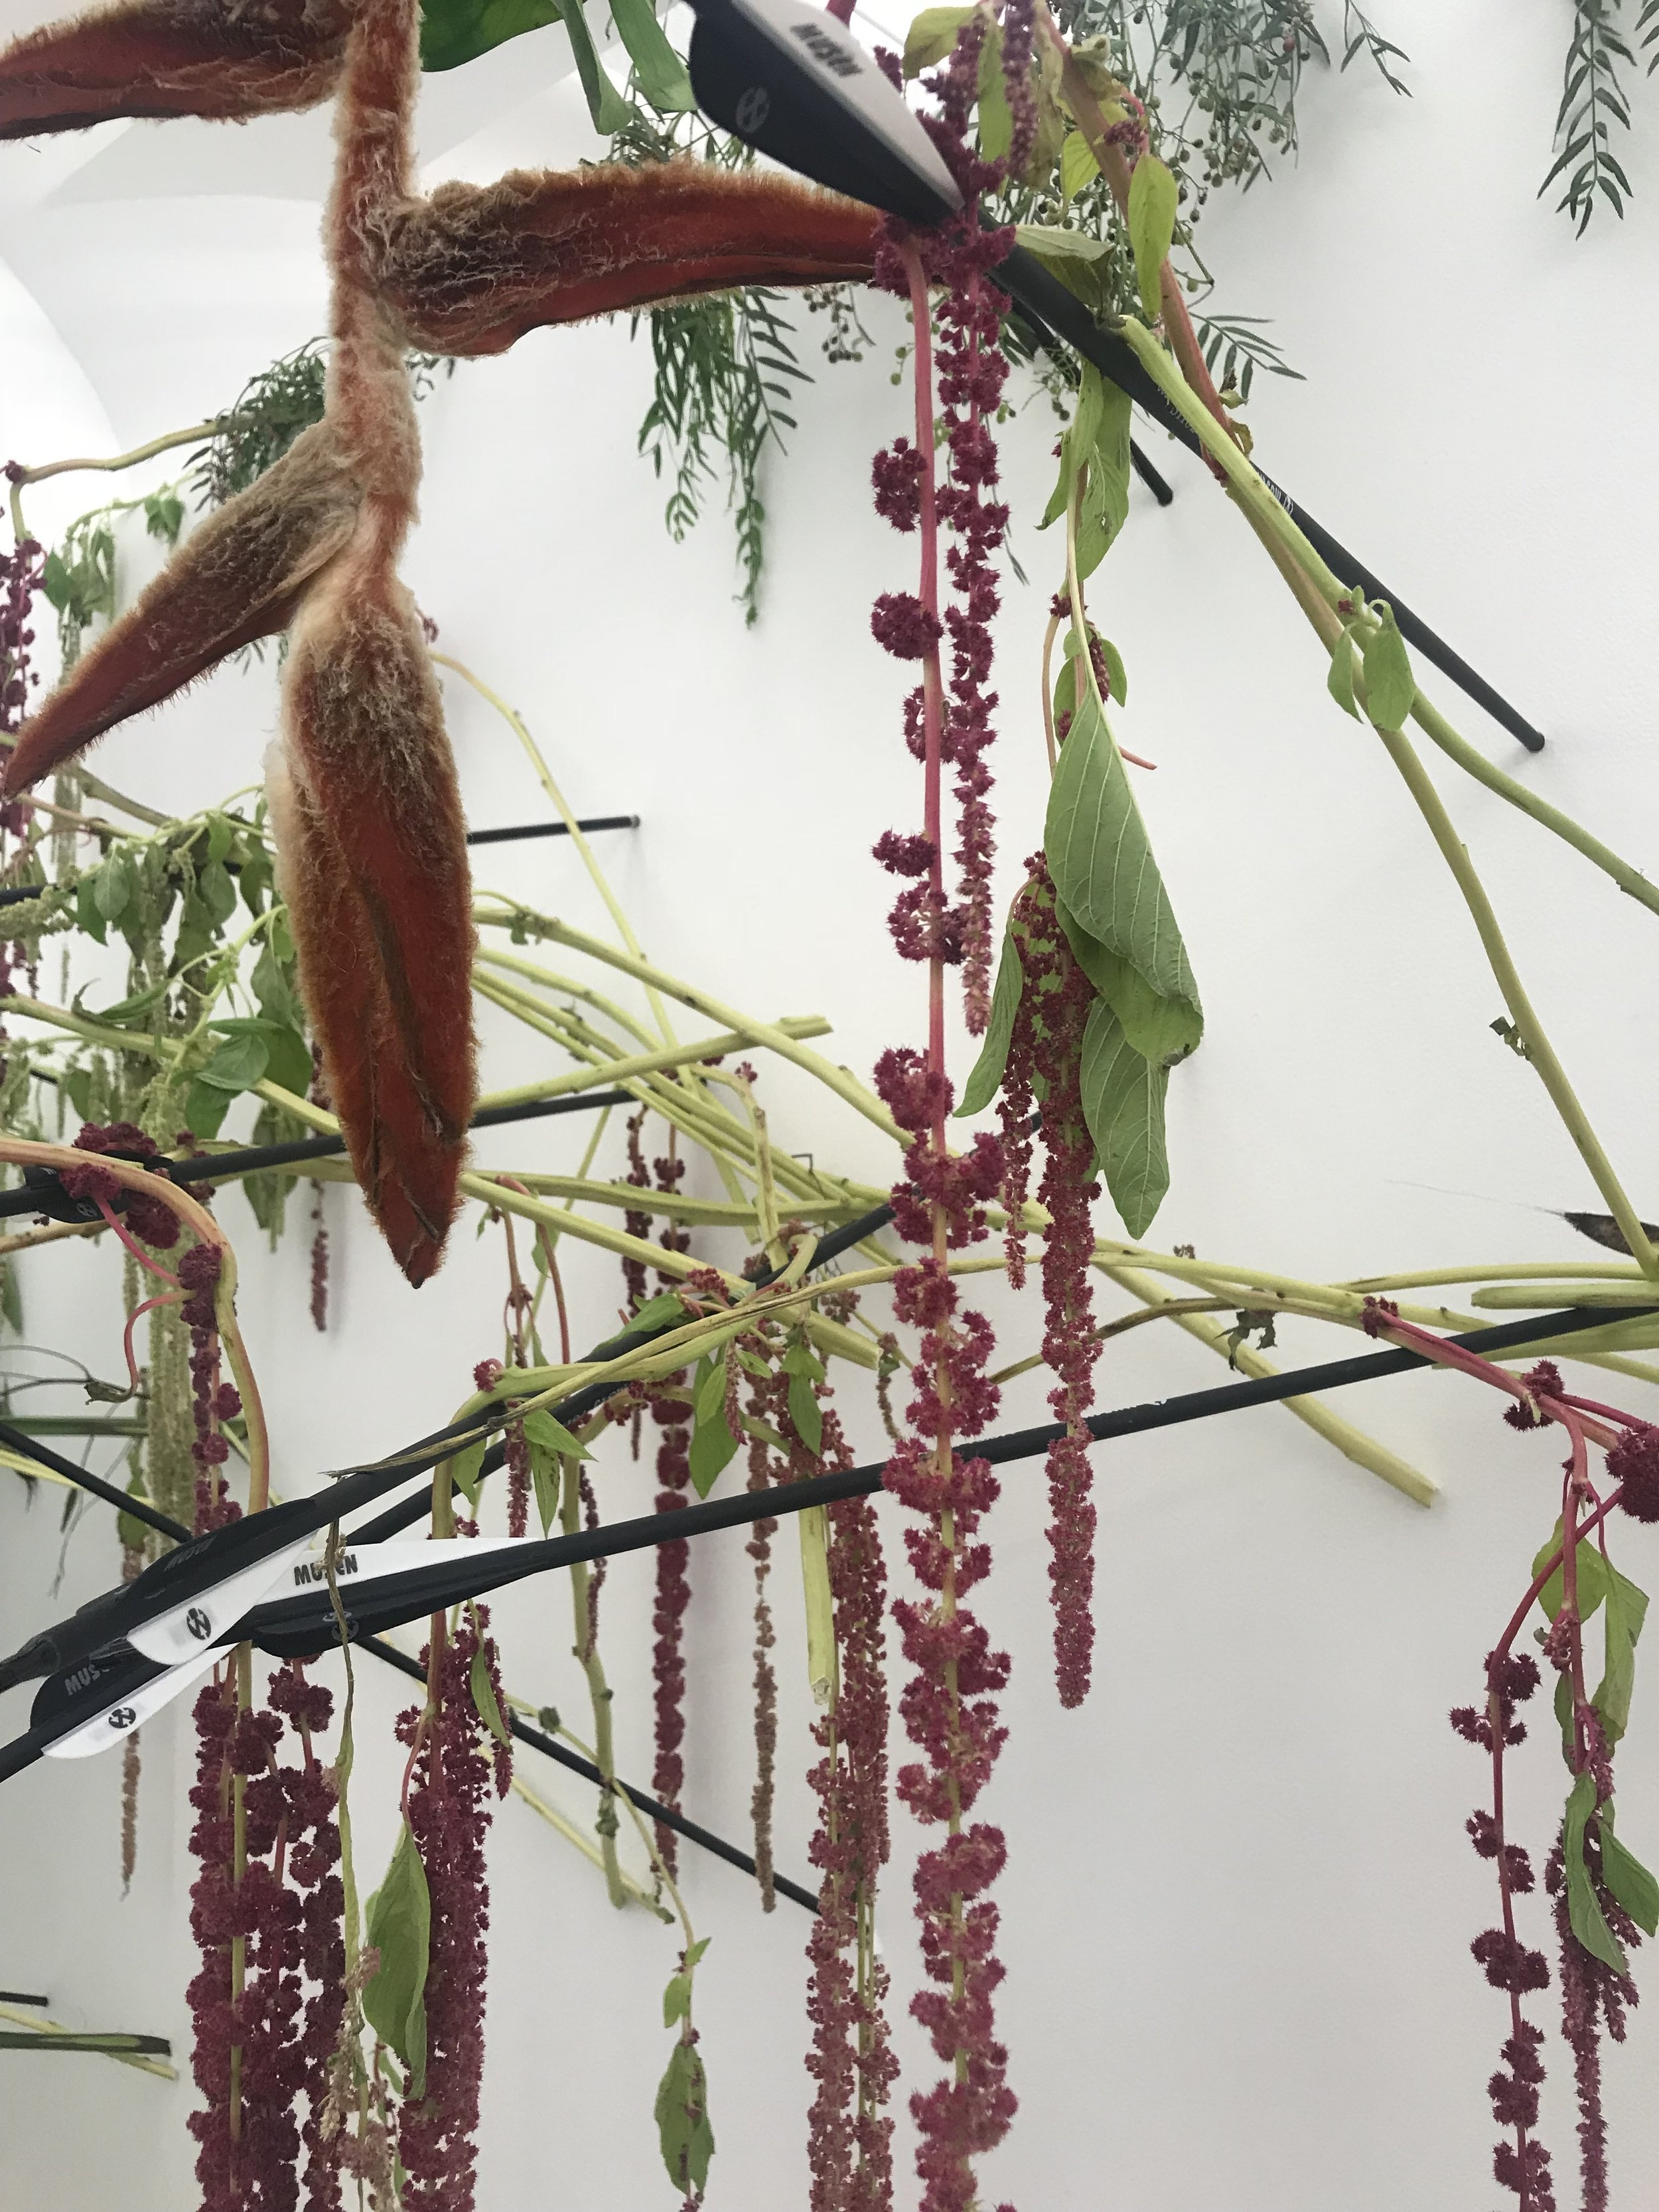 dried and not living ... heliconia